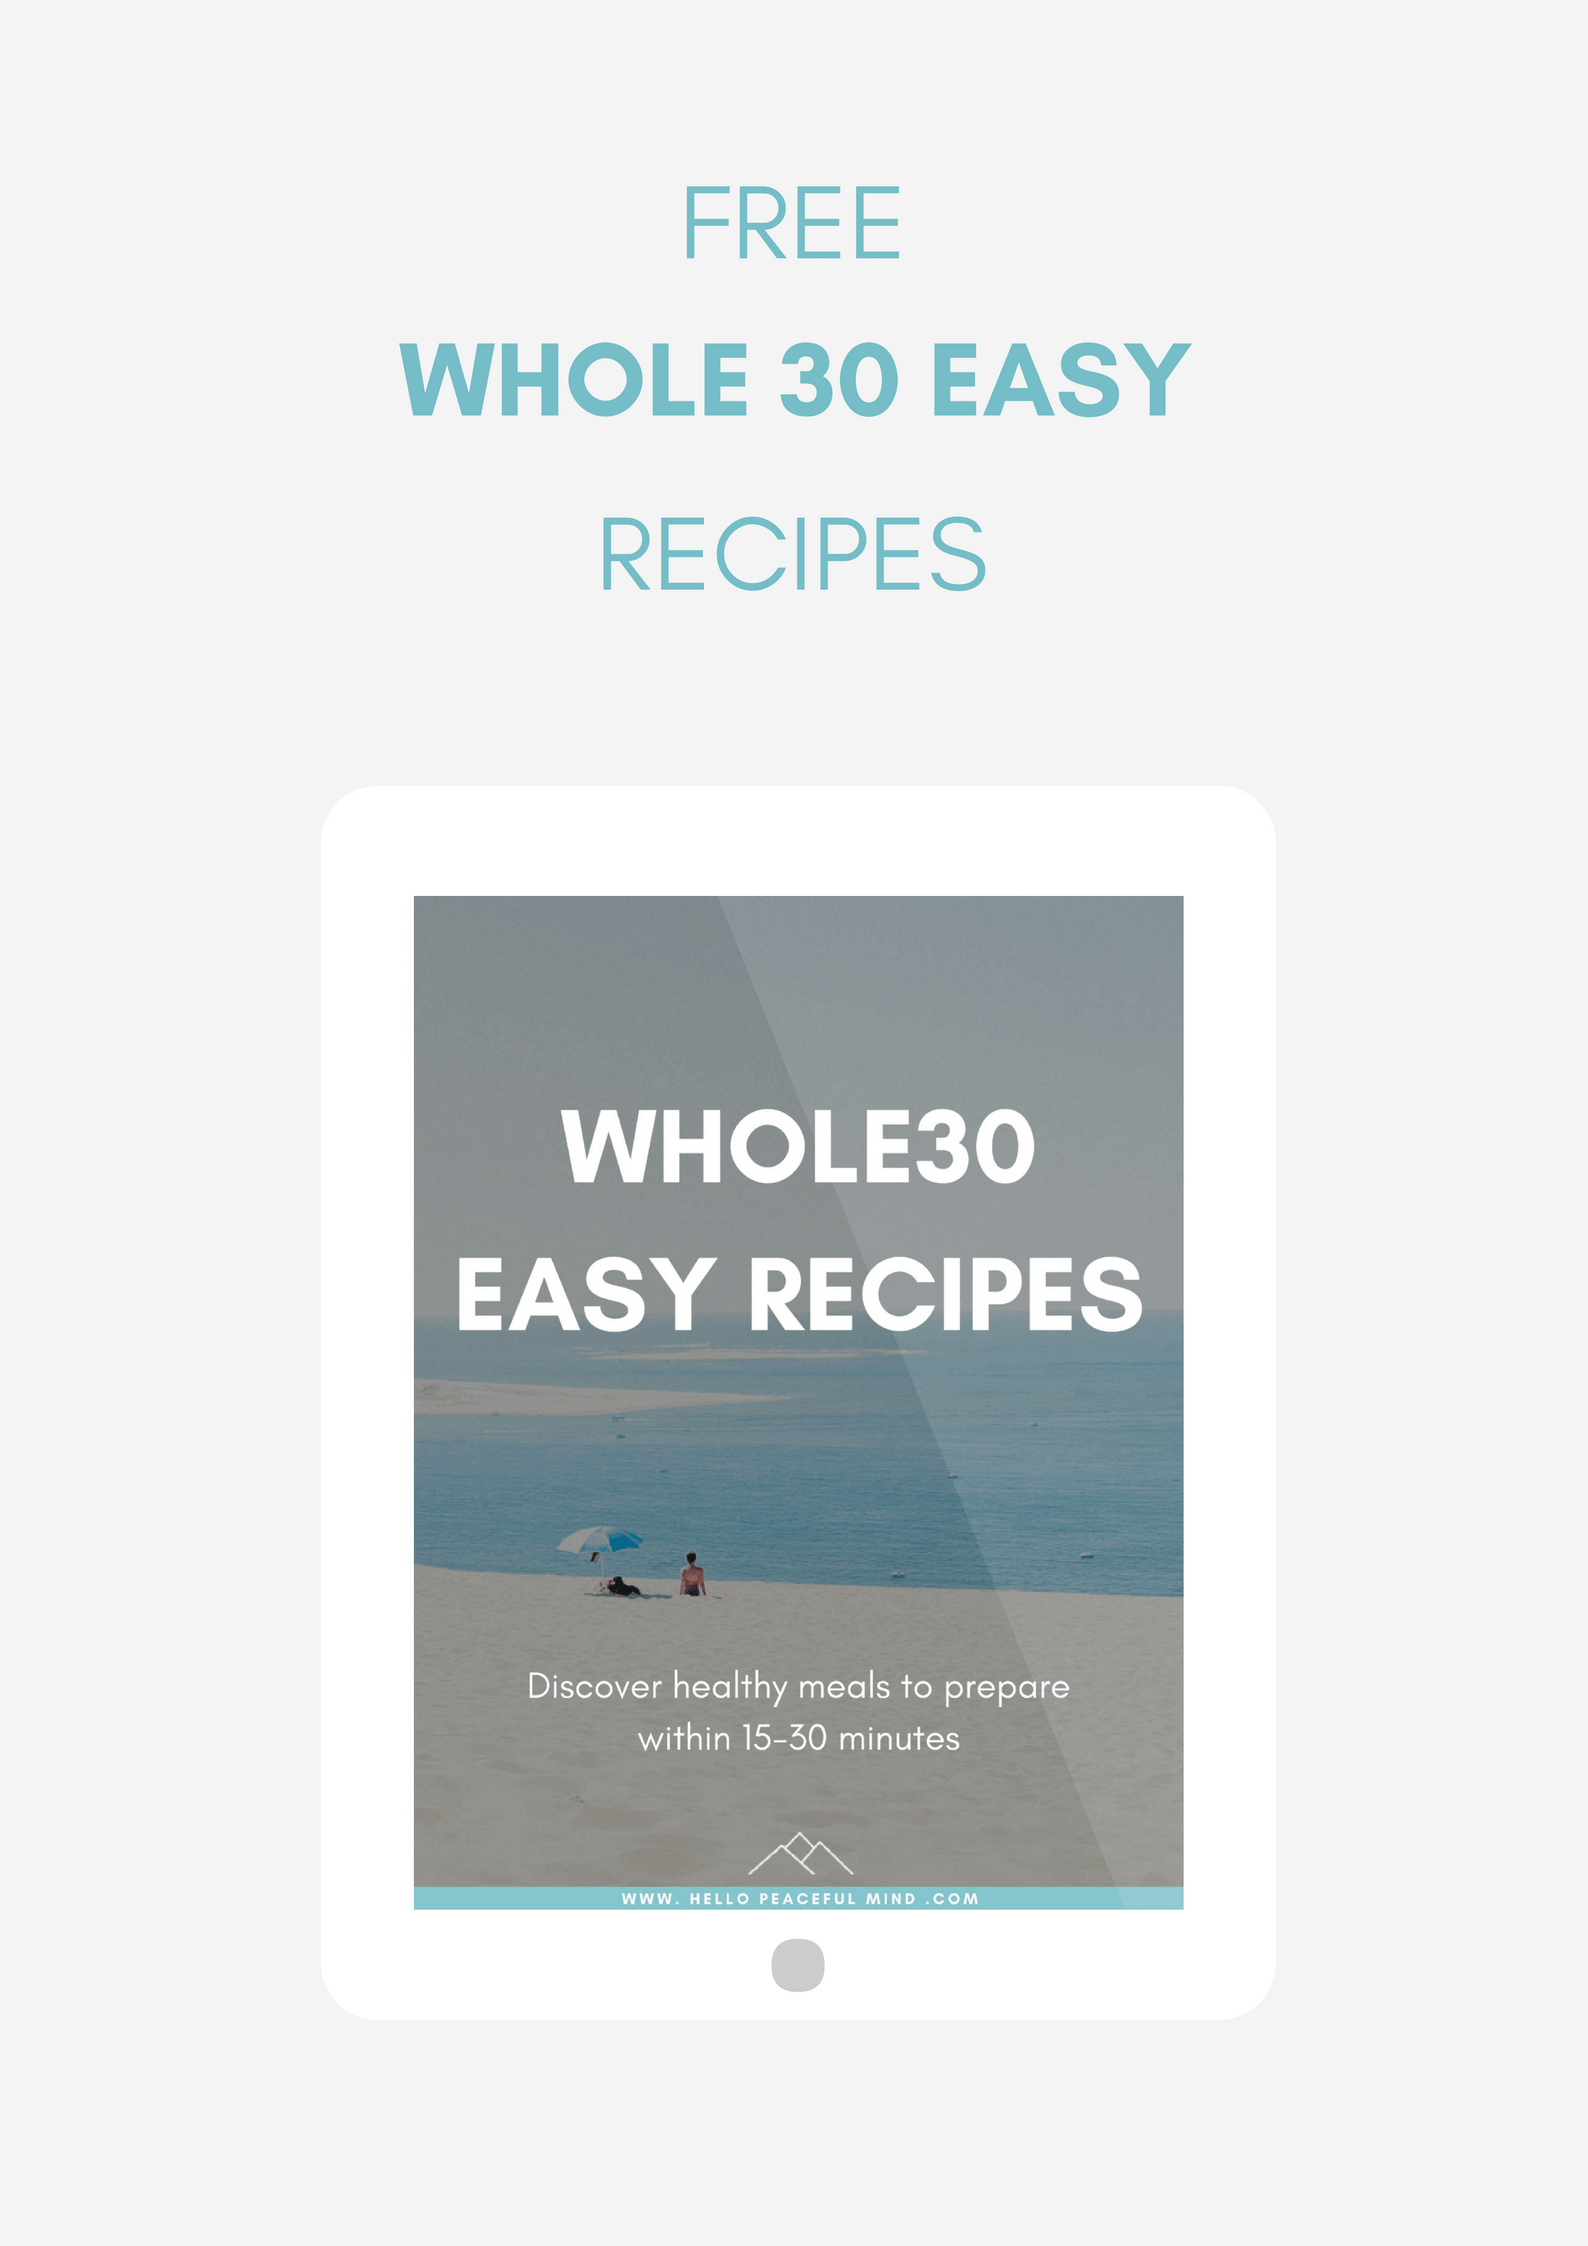 Discover these very easy recipes to eat healthy while doing the whole 30! Go to www.HelloPeacefulMind.com to download them.